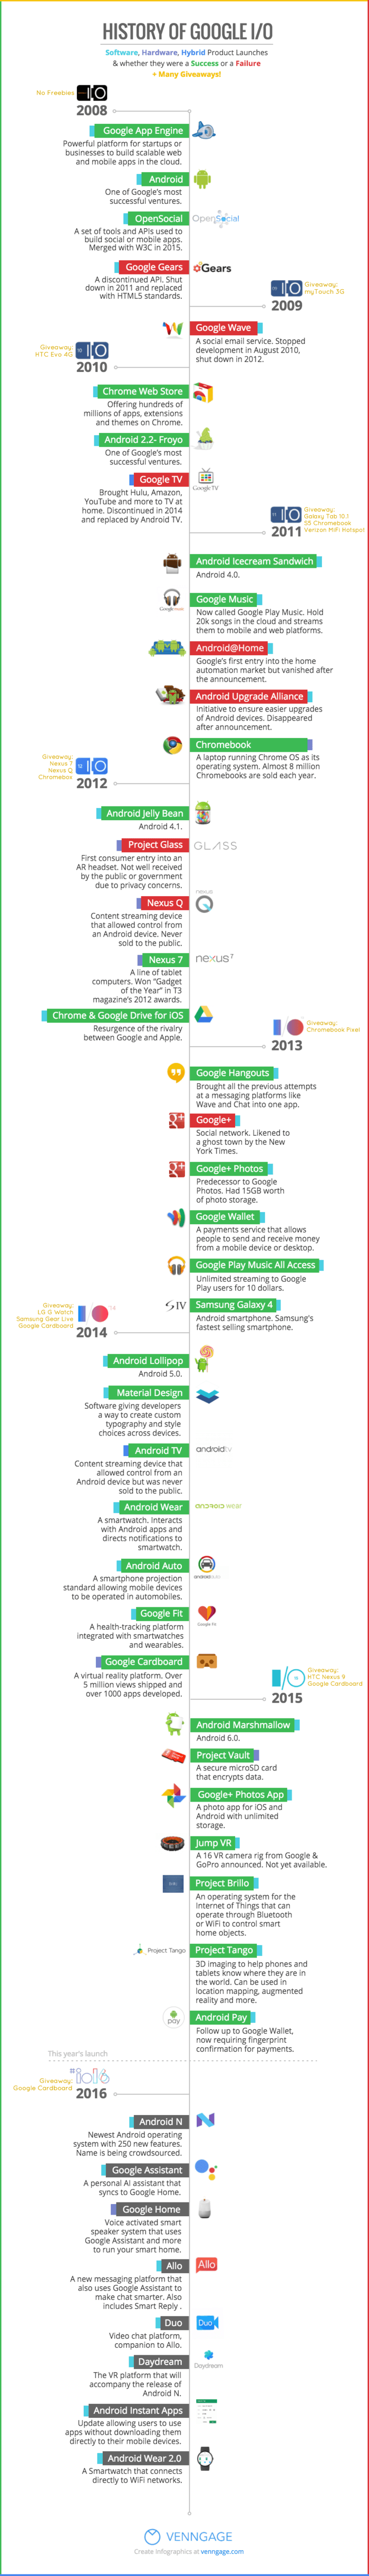 Google History Timeline Template